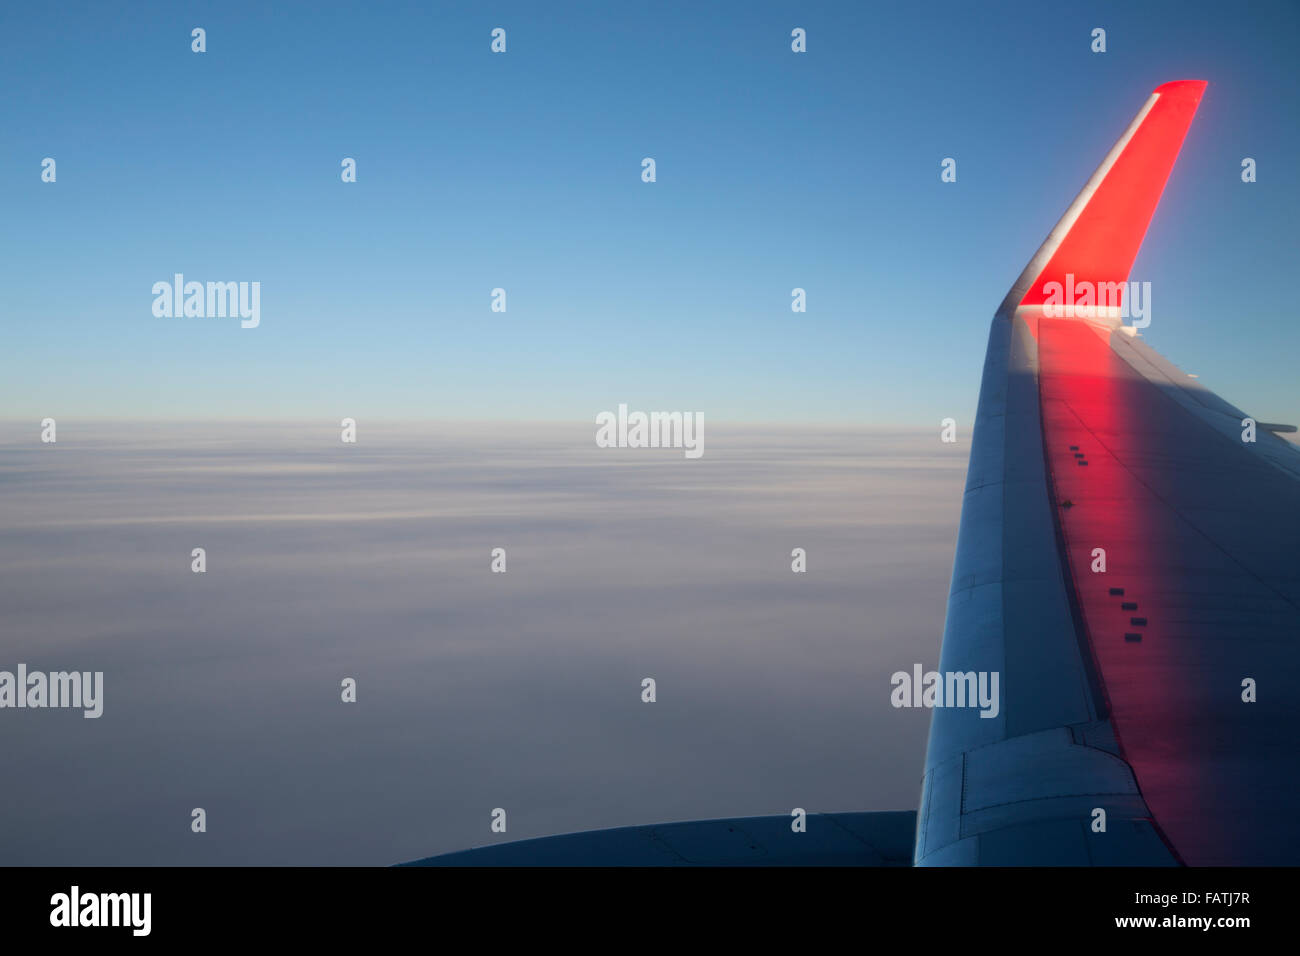 View from an aeroplane window, looking over the wing and winglet. - Stock Image